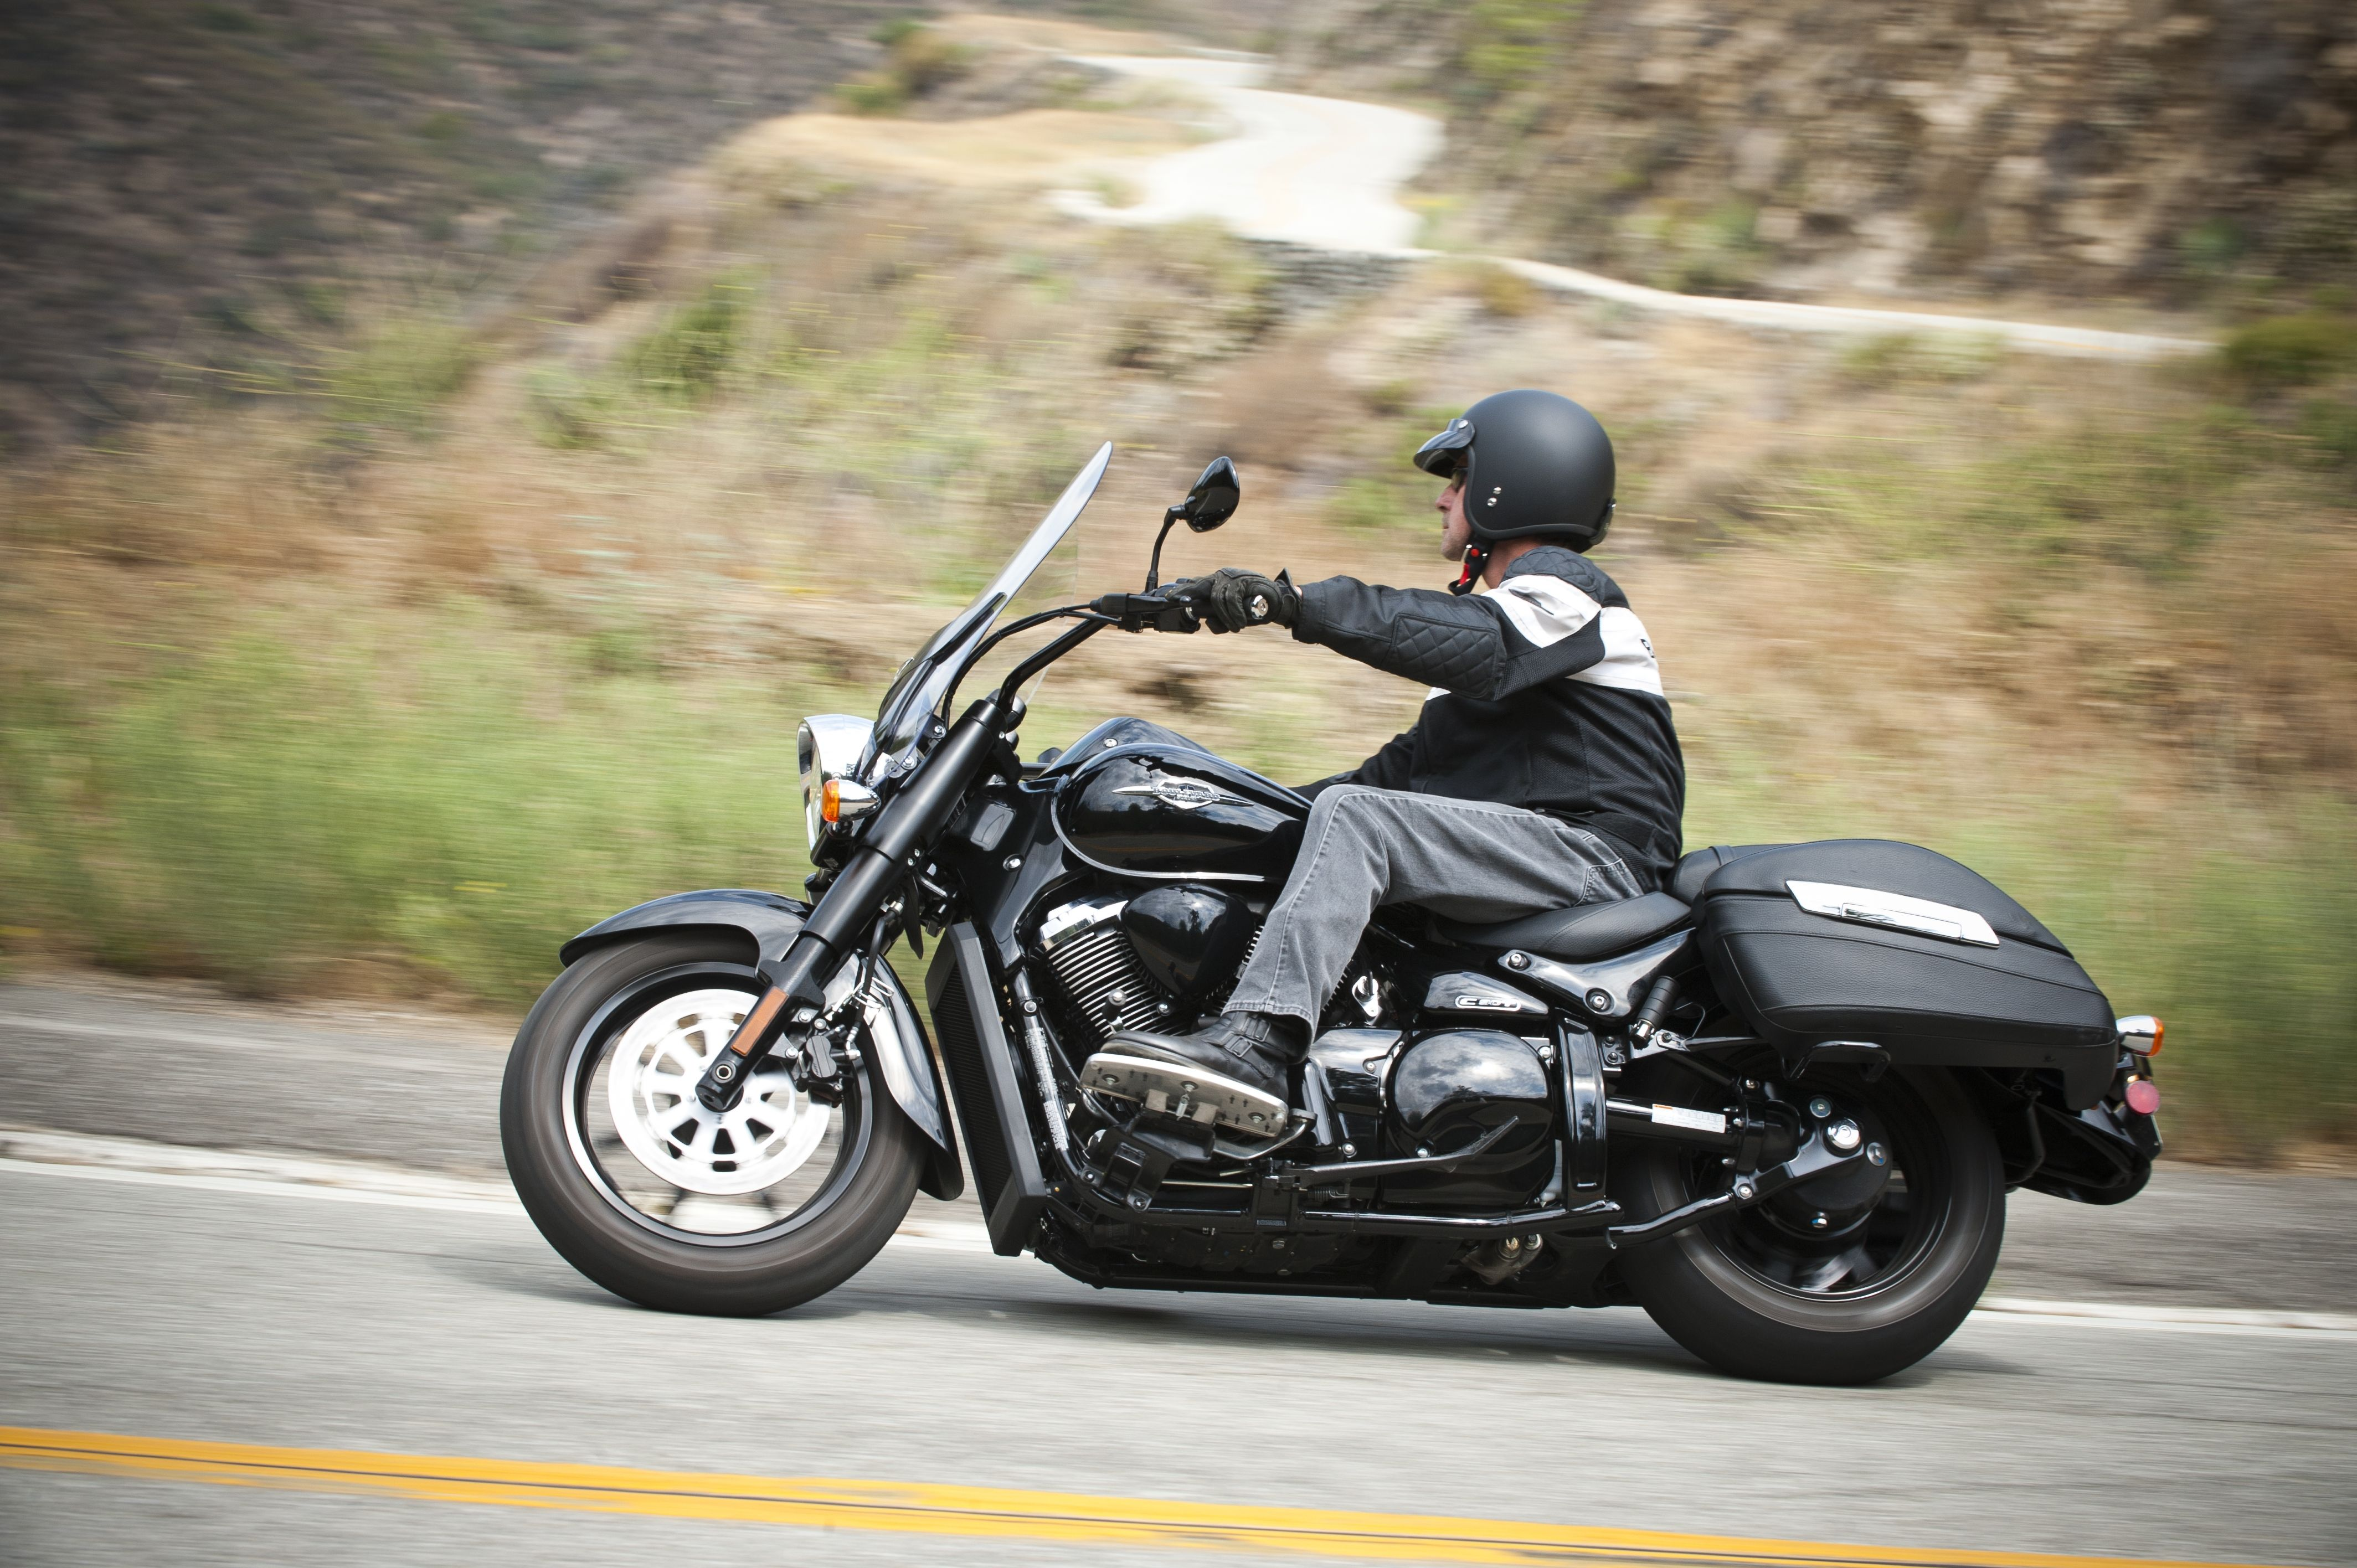 Don't just drive... go for a cruise on a Suzuki Boulevard